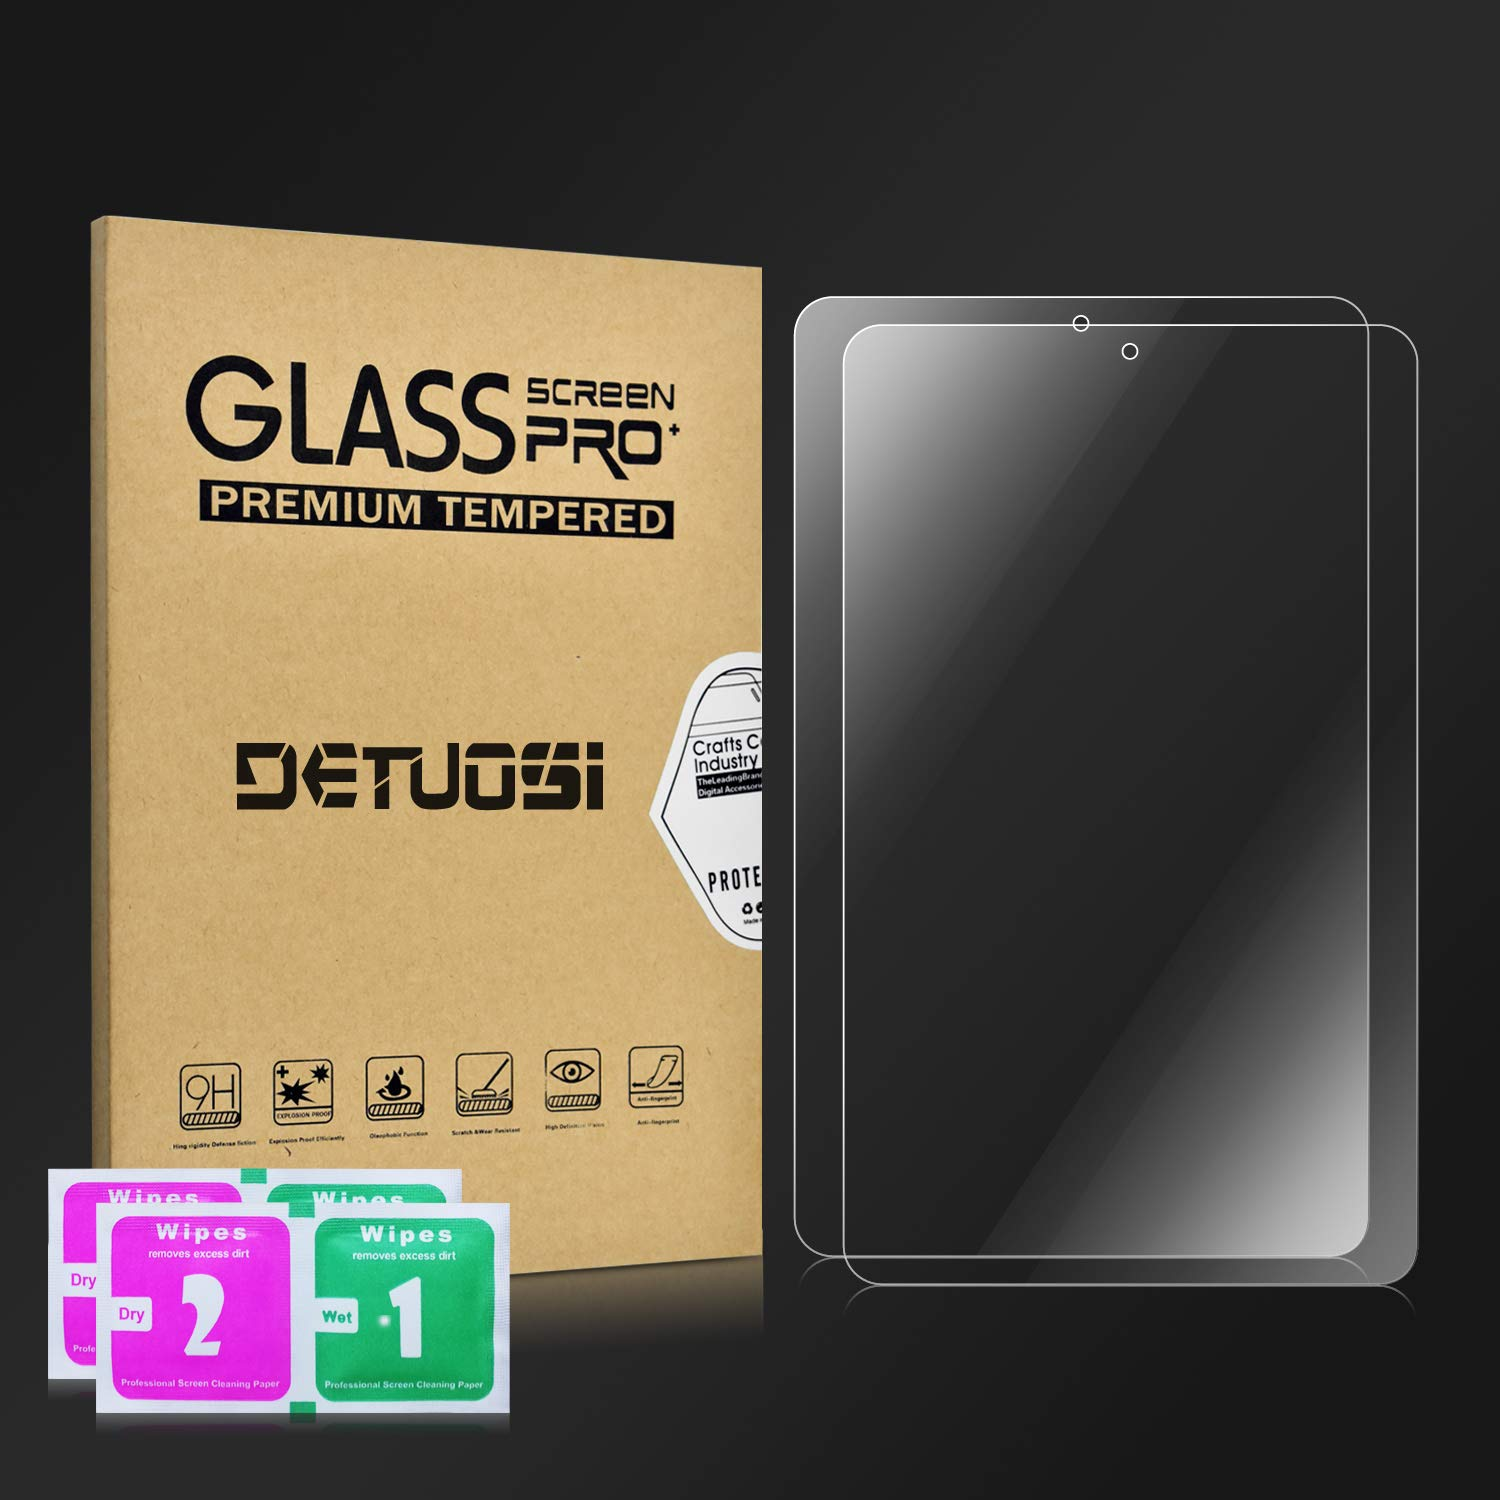 Scratch-Resistant No-Bubble 2 Pack Clear High Definition Tempered Glass Screen Protector for Samsung Galaxy Tab A SM-T387 DETUOSI Samsung Galaxy Tab A 8.0 2018 SM-T387 Screen Protector-